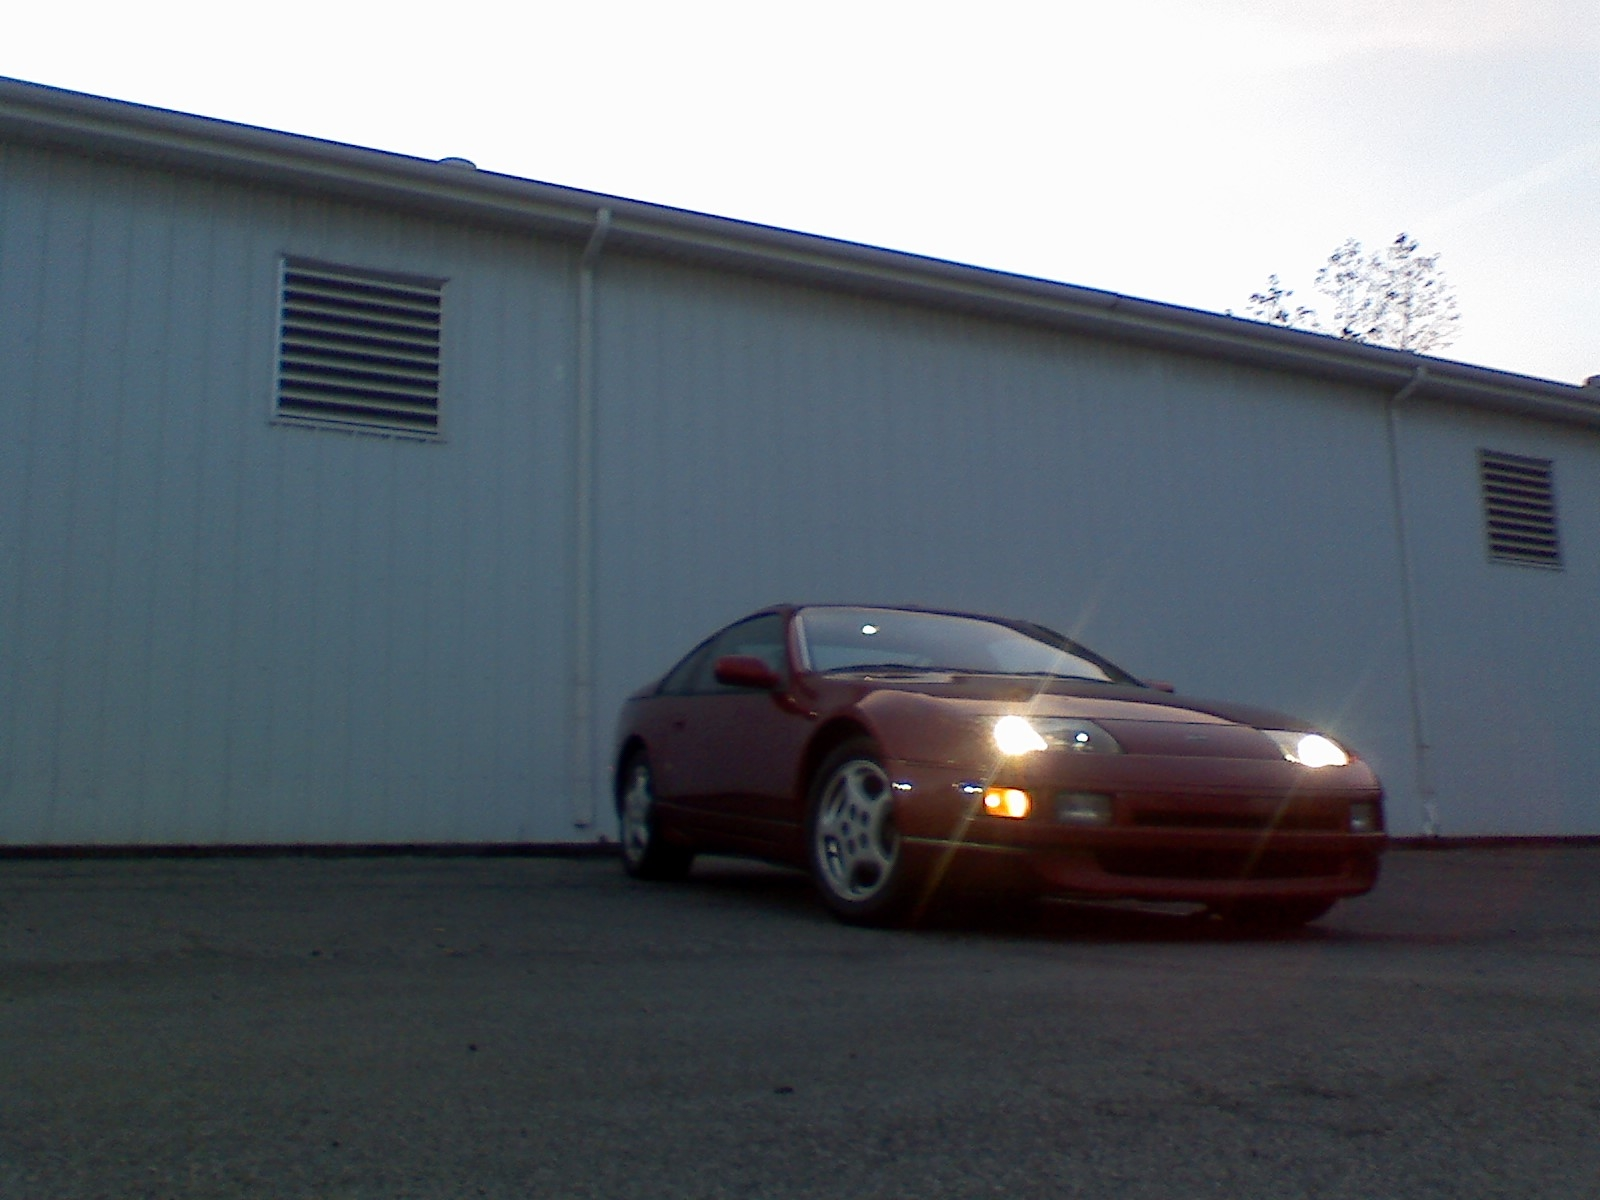 78617861's 1993 Nissan 300ZX